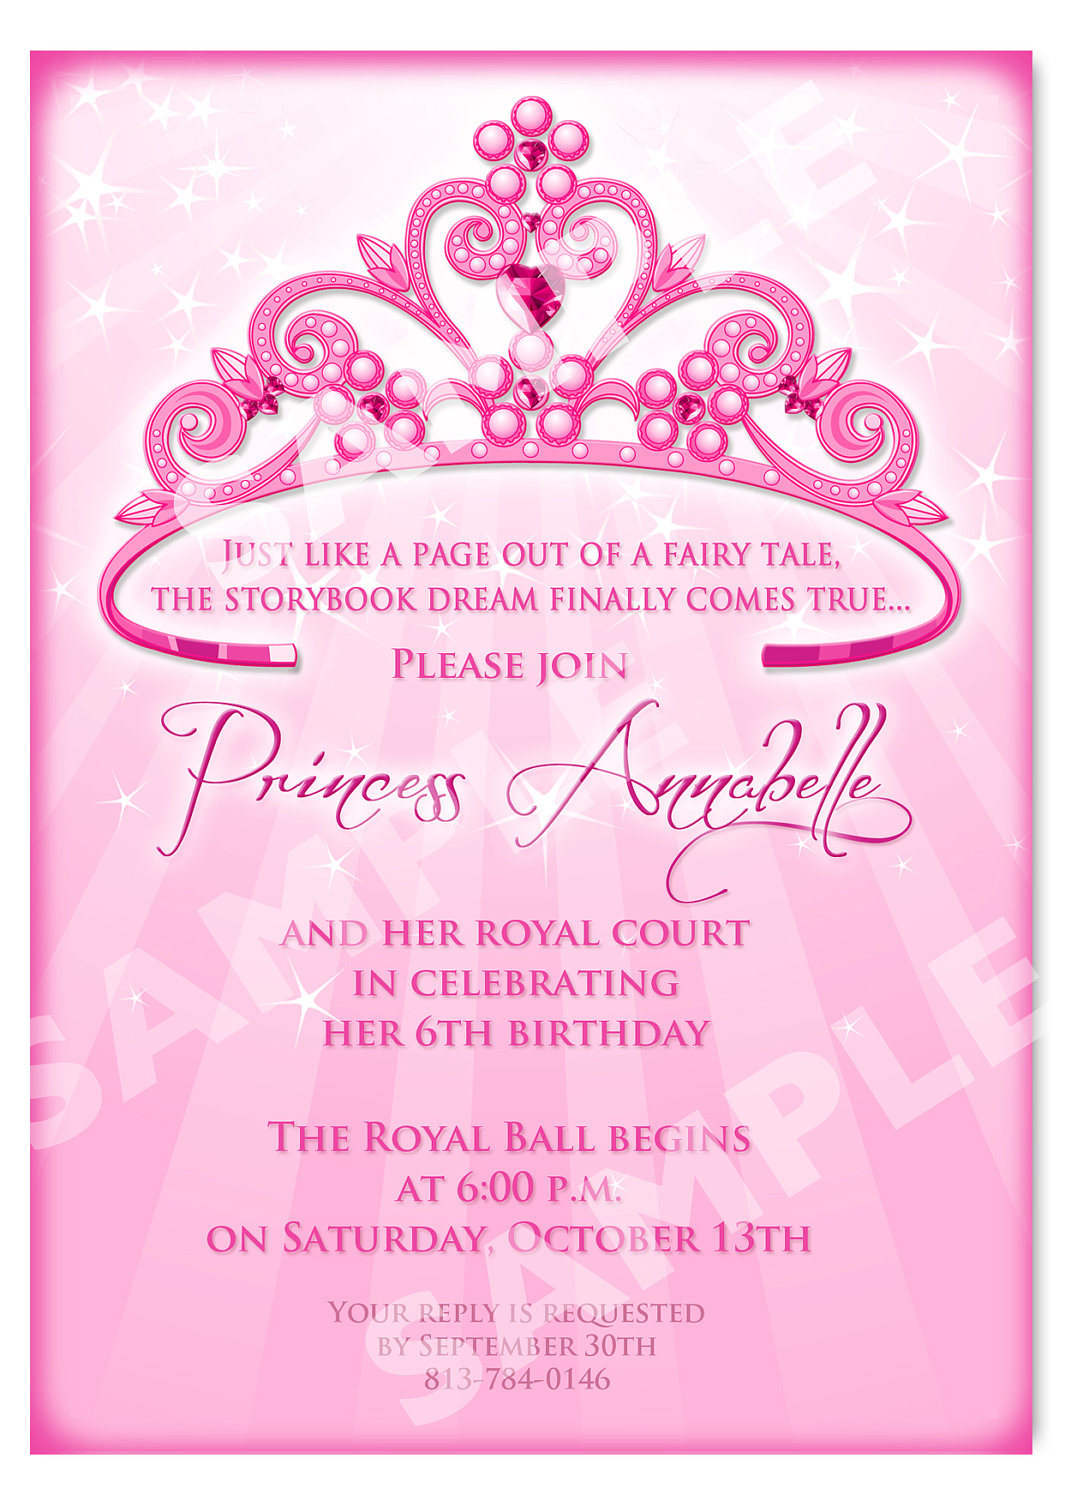 13th birthday party invitations templates free ; 57d8aede4ddc1c1285a4c7d978f4ebc6